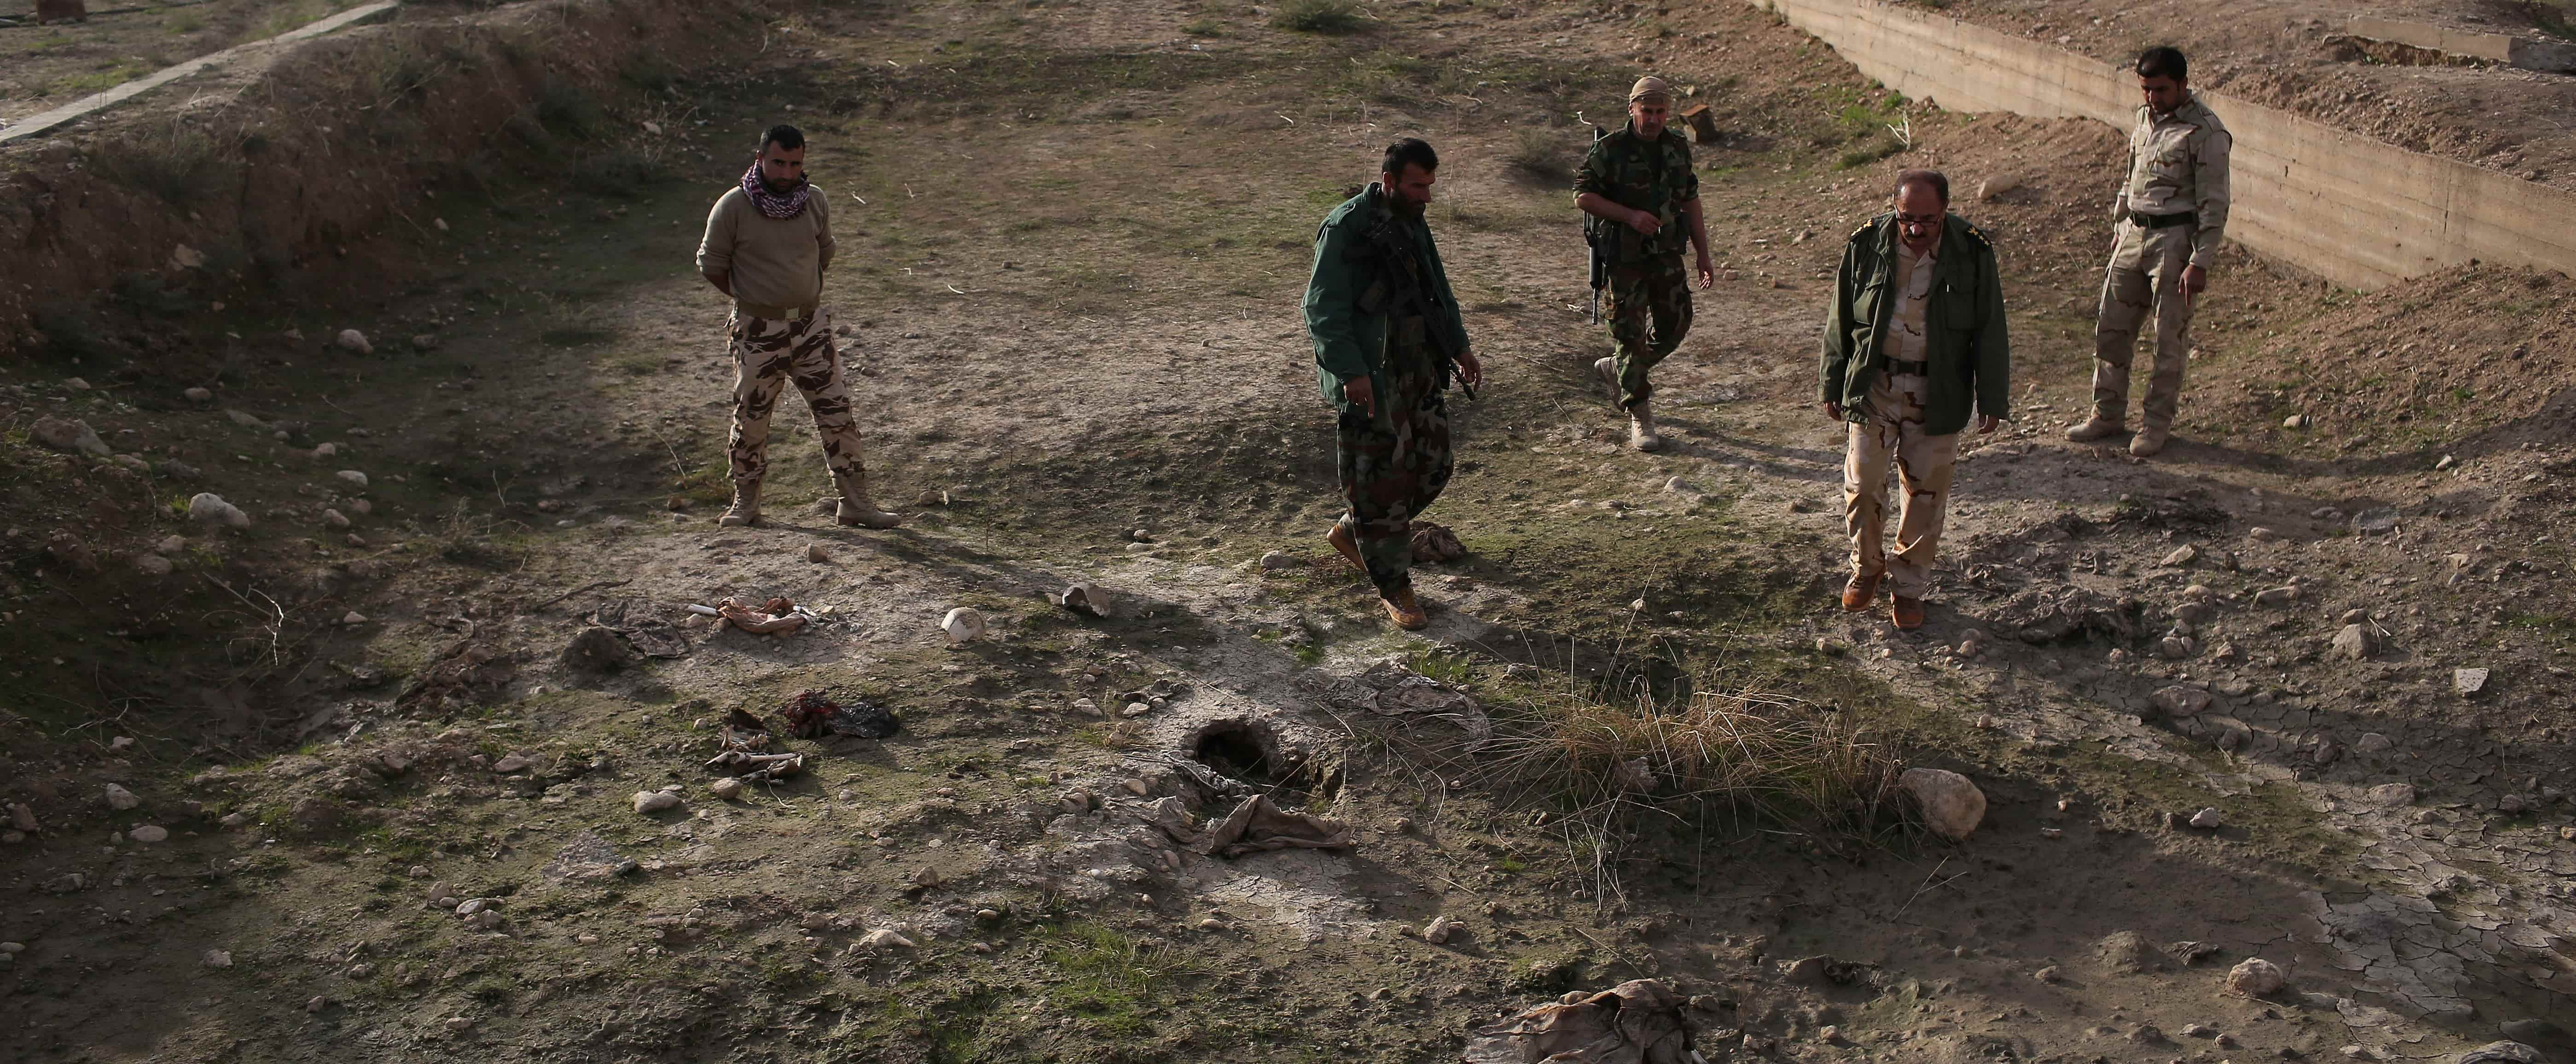 Kurdish Peshmerga show what they say is a mass grave of more than 50 Yazidis killed by ISIL on November 15, 2015 in Sinjar, Iraq. Photo: Getty Images/John Moore